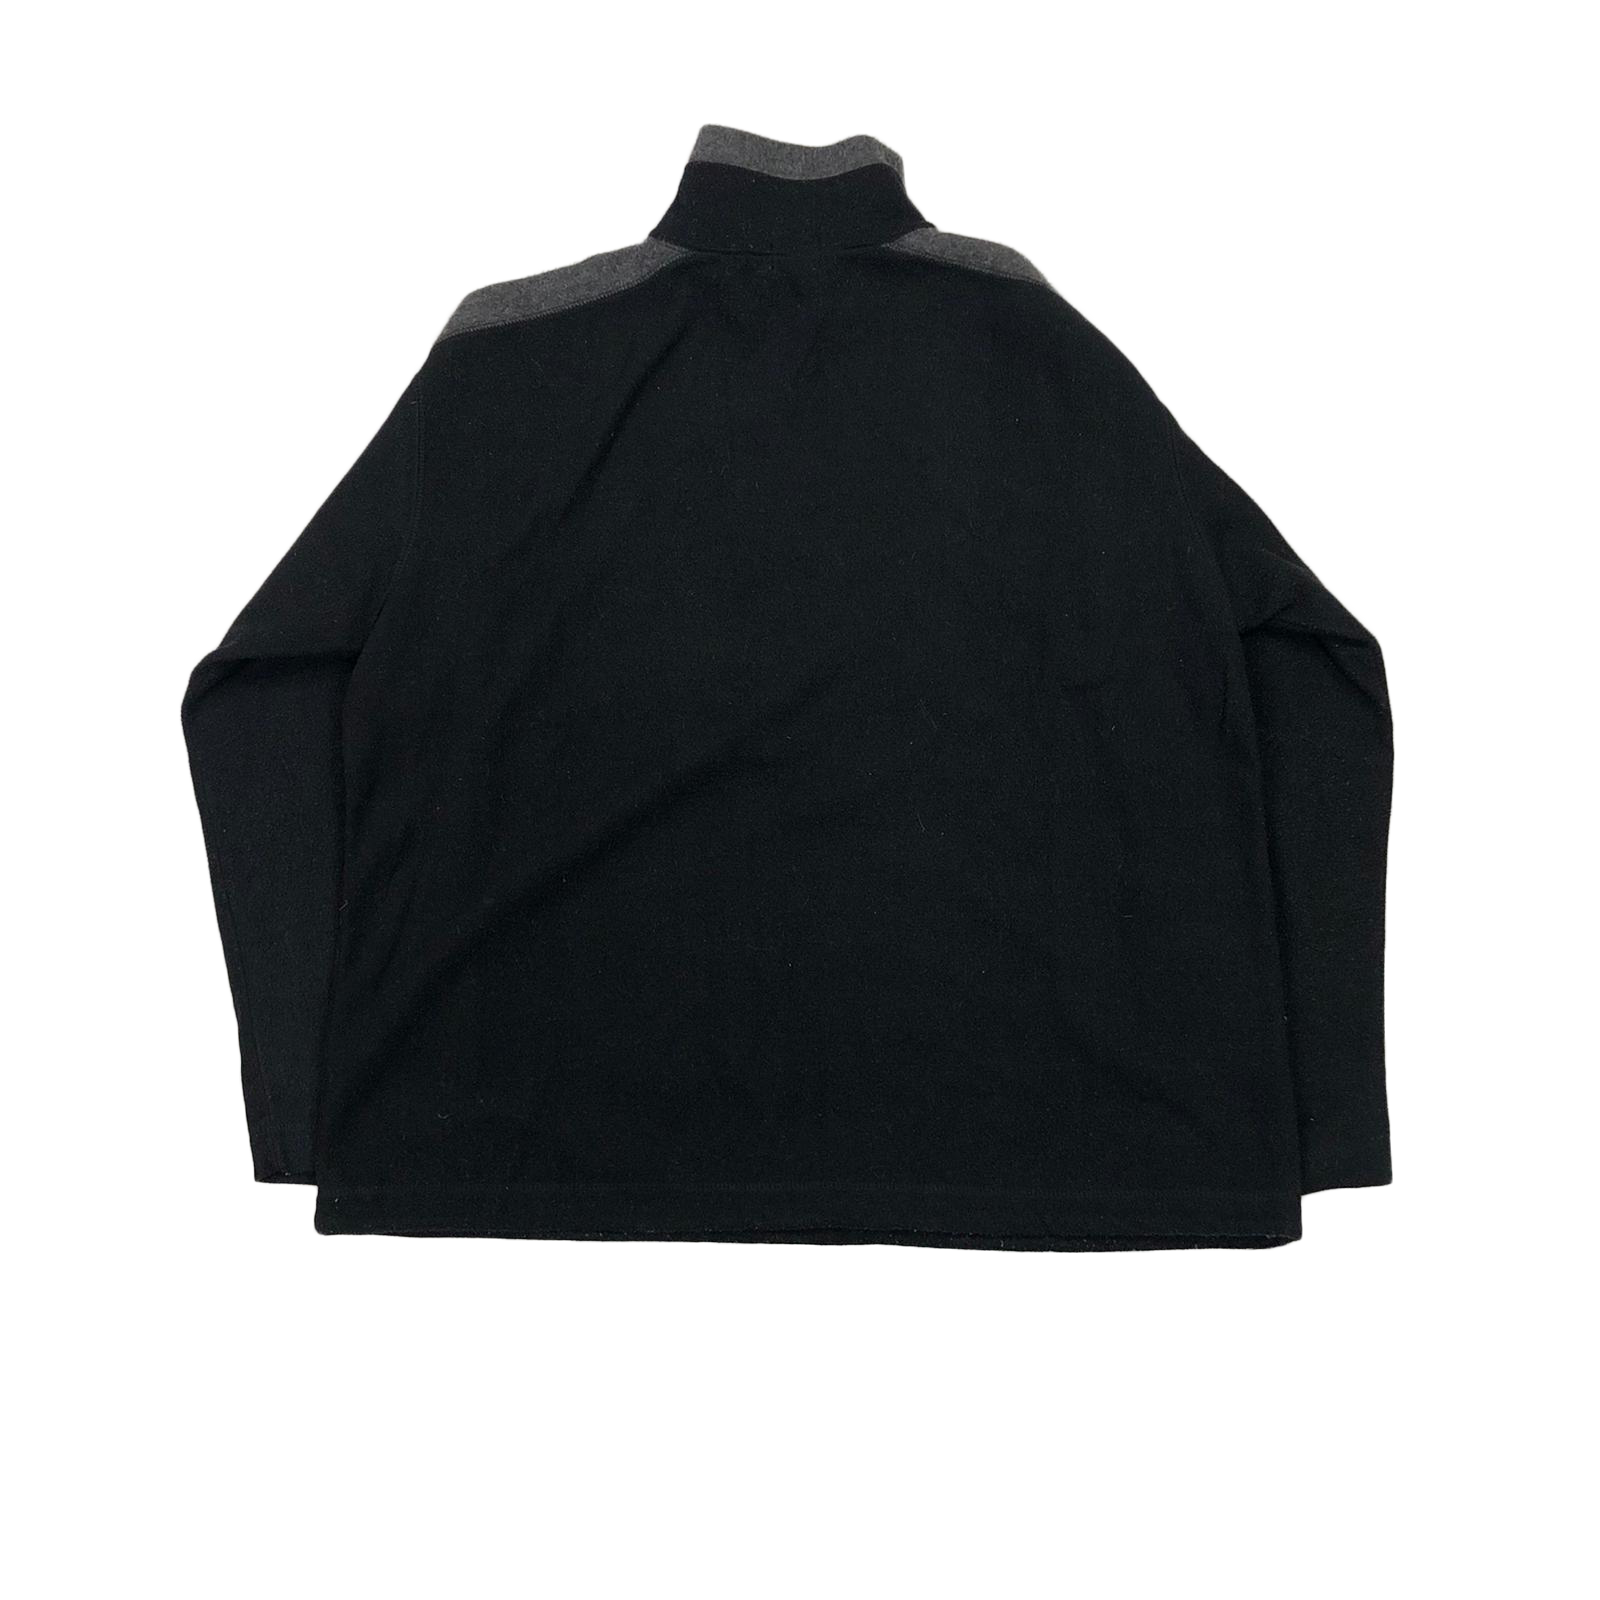 Dolce & Gabbana 1/4 zip fleece